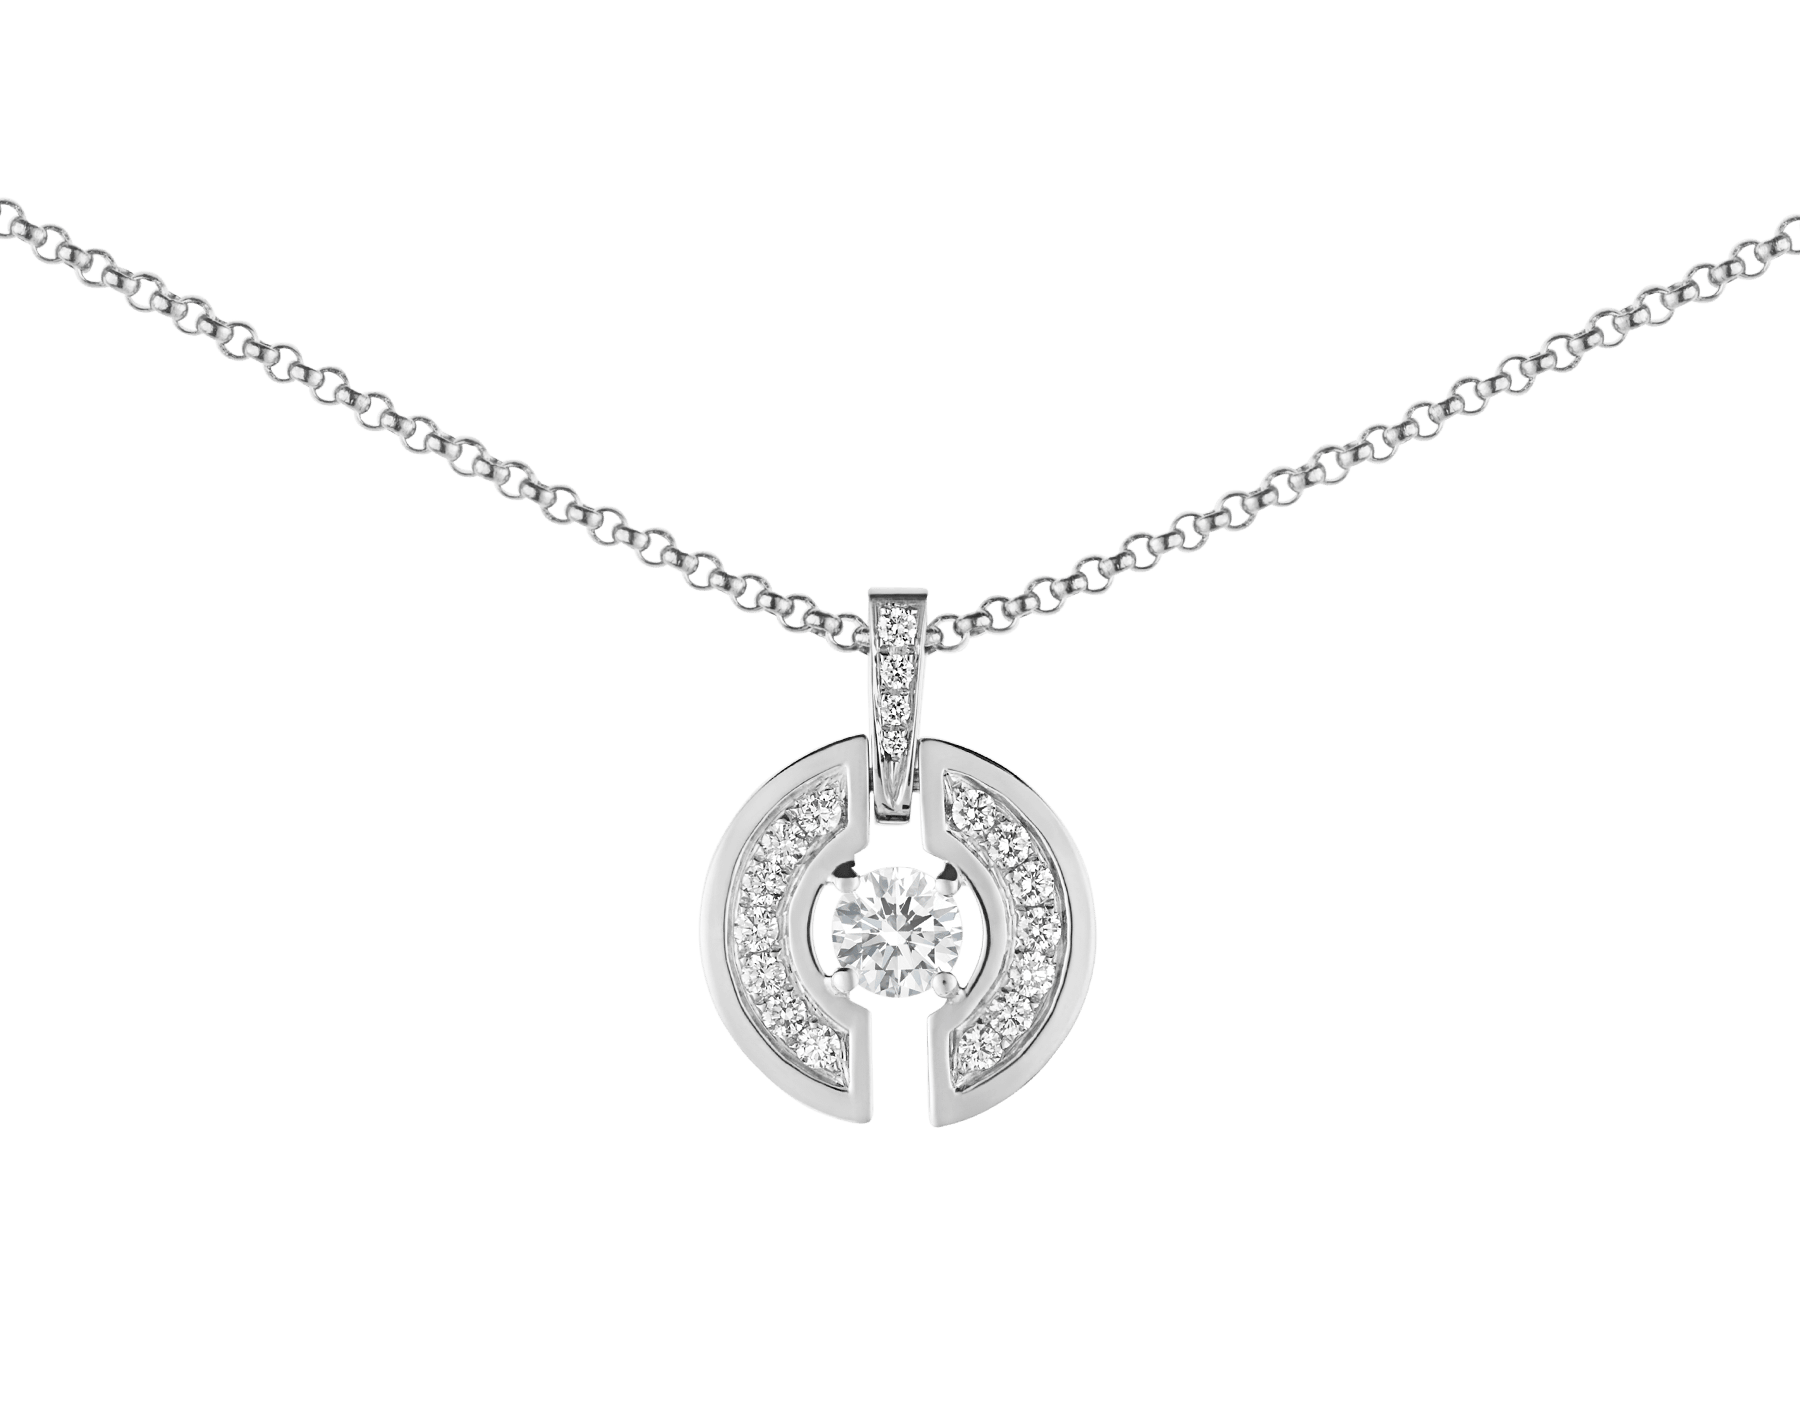 Parentesi necklace with 18 kt white gold chain and pendant, set with a central diamond and pavé diamonds. 354312 image 3